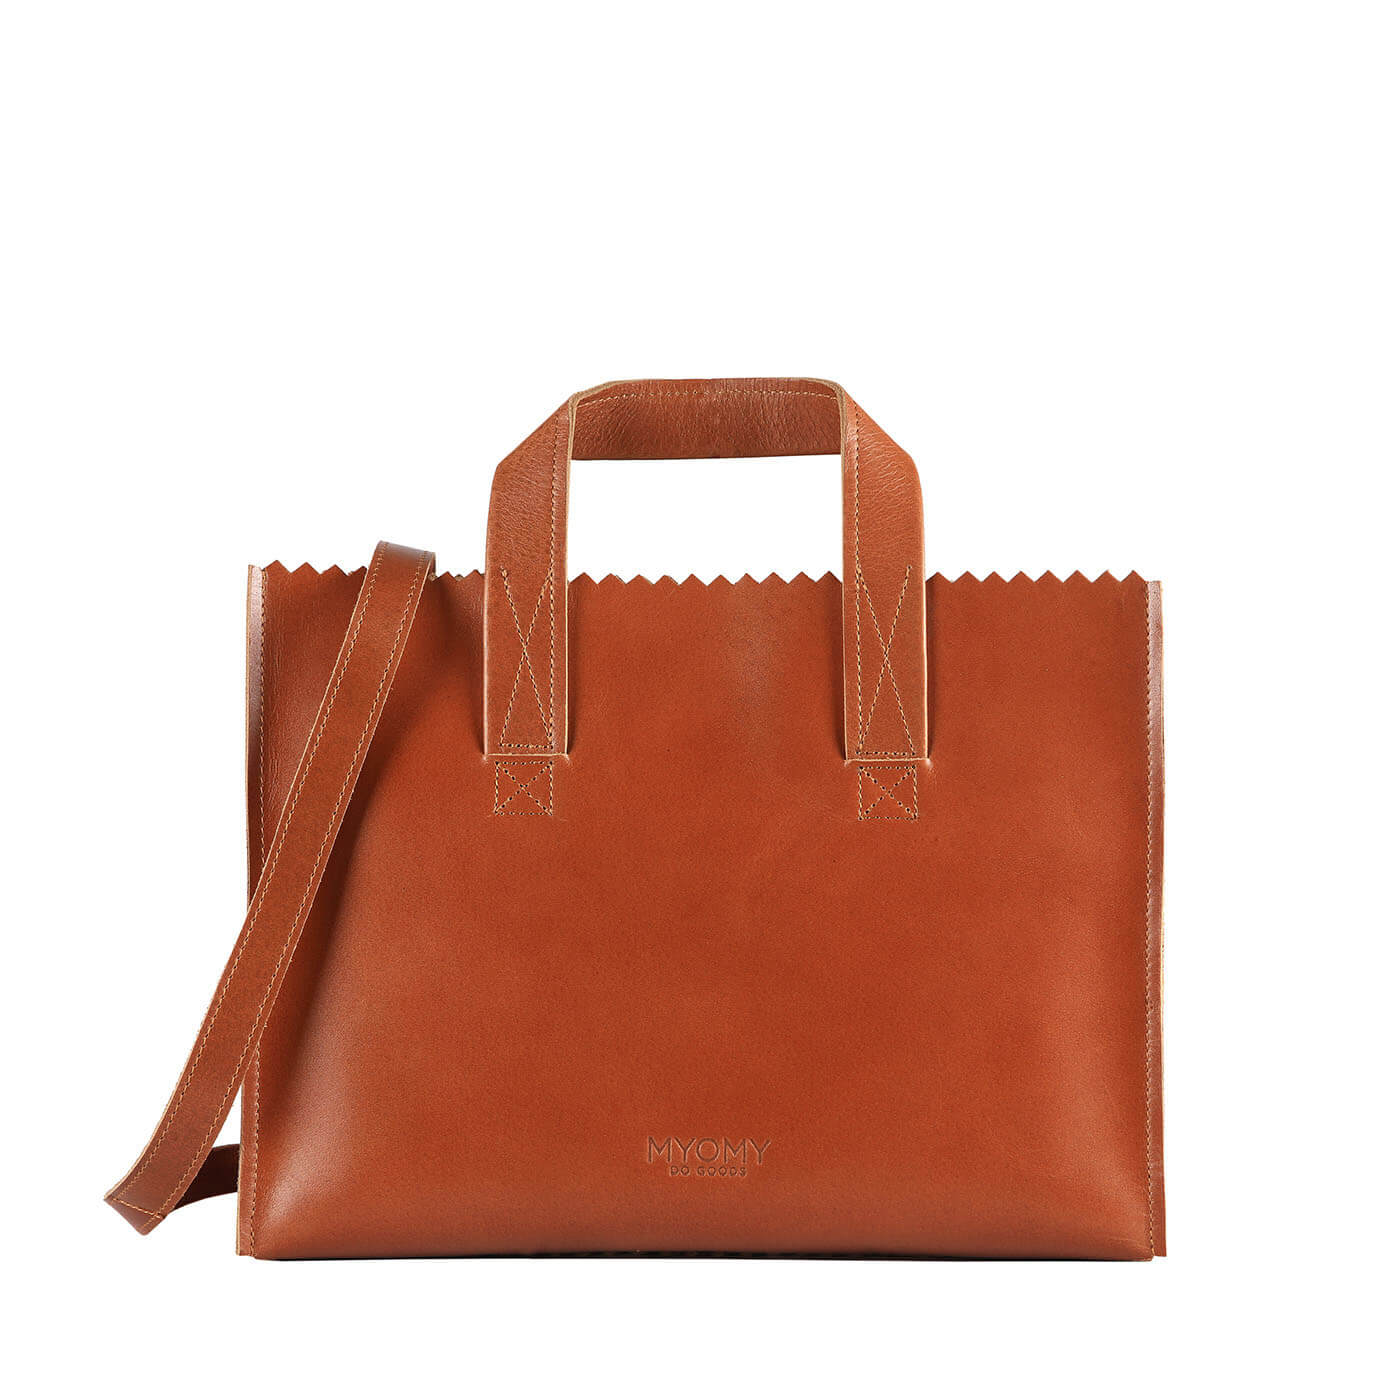 [PRE-ORDER] MY PAPER BAG Handbag cross-body – hunter waxy cognac